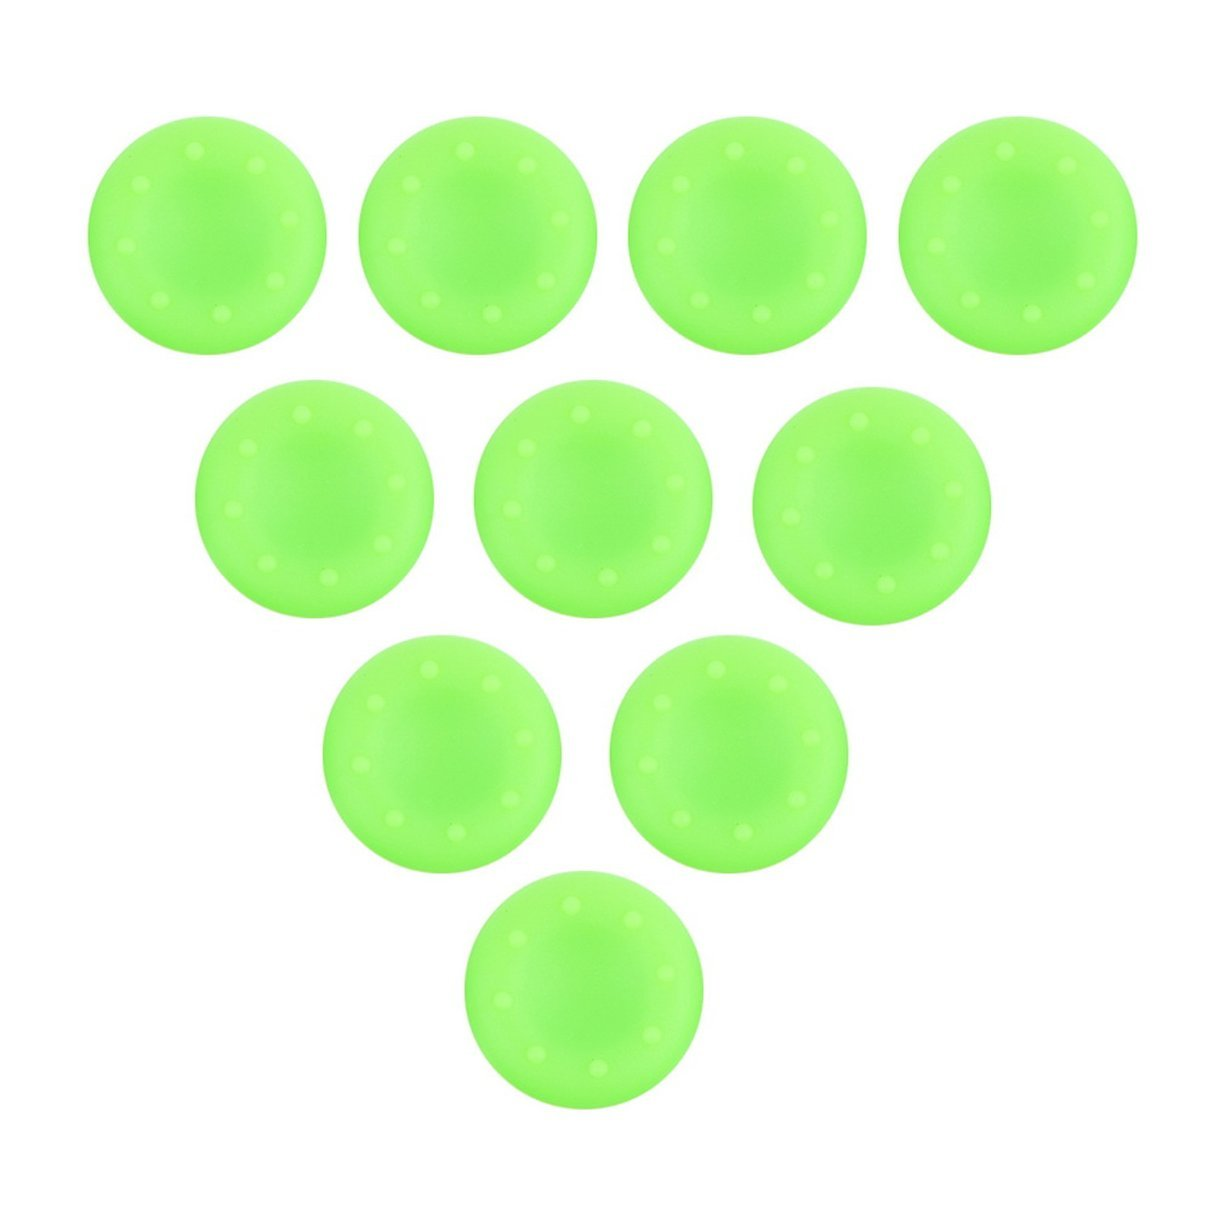 10 Pz Silicone antipolvere Dirt-proof Controller Analog Thumb Stick Grip Thumbstick Thumbstick GripsCap Cover Per PS4 XBOX ONE Detectoy